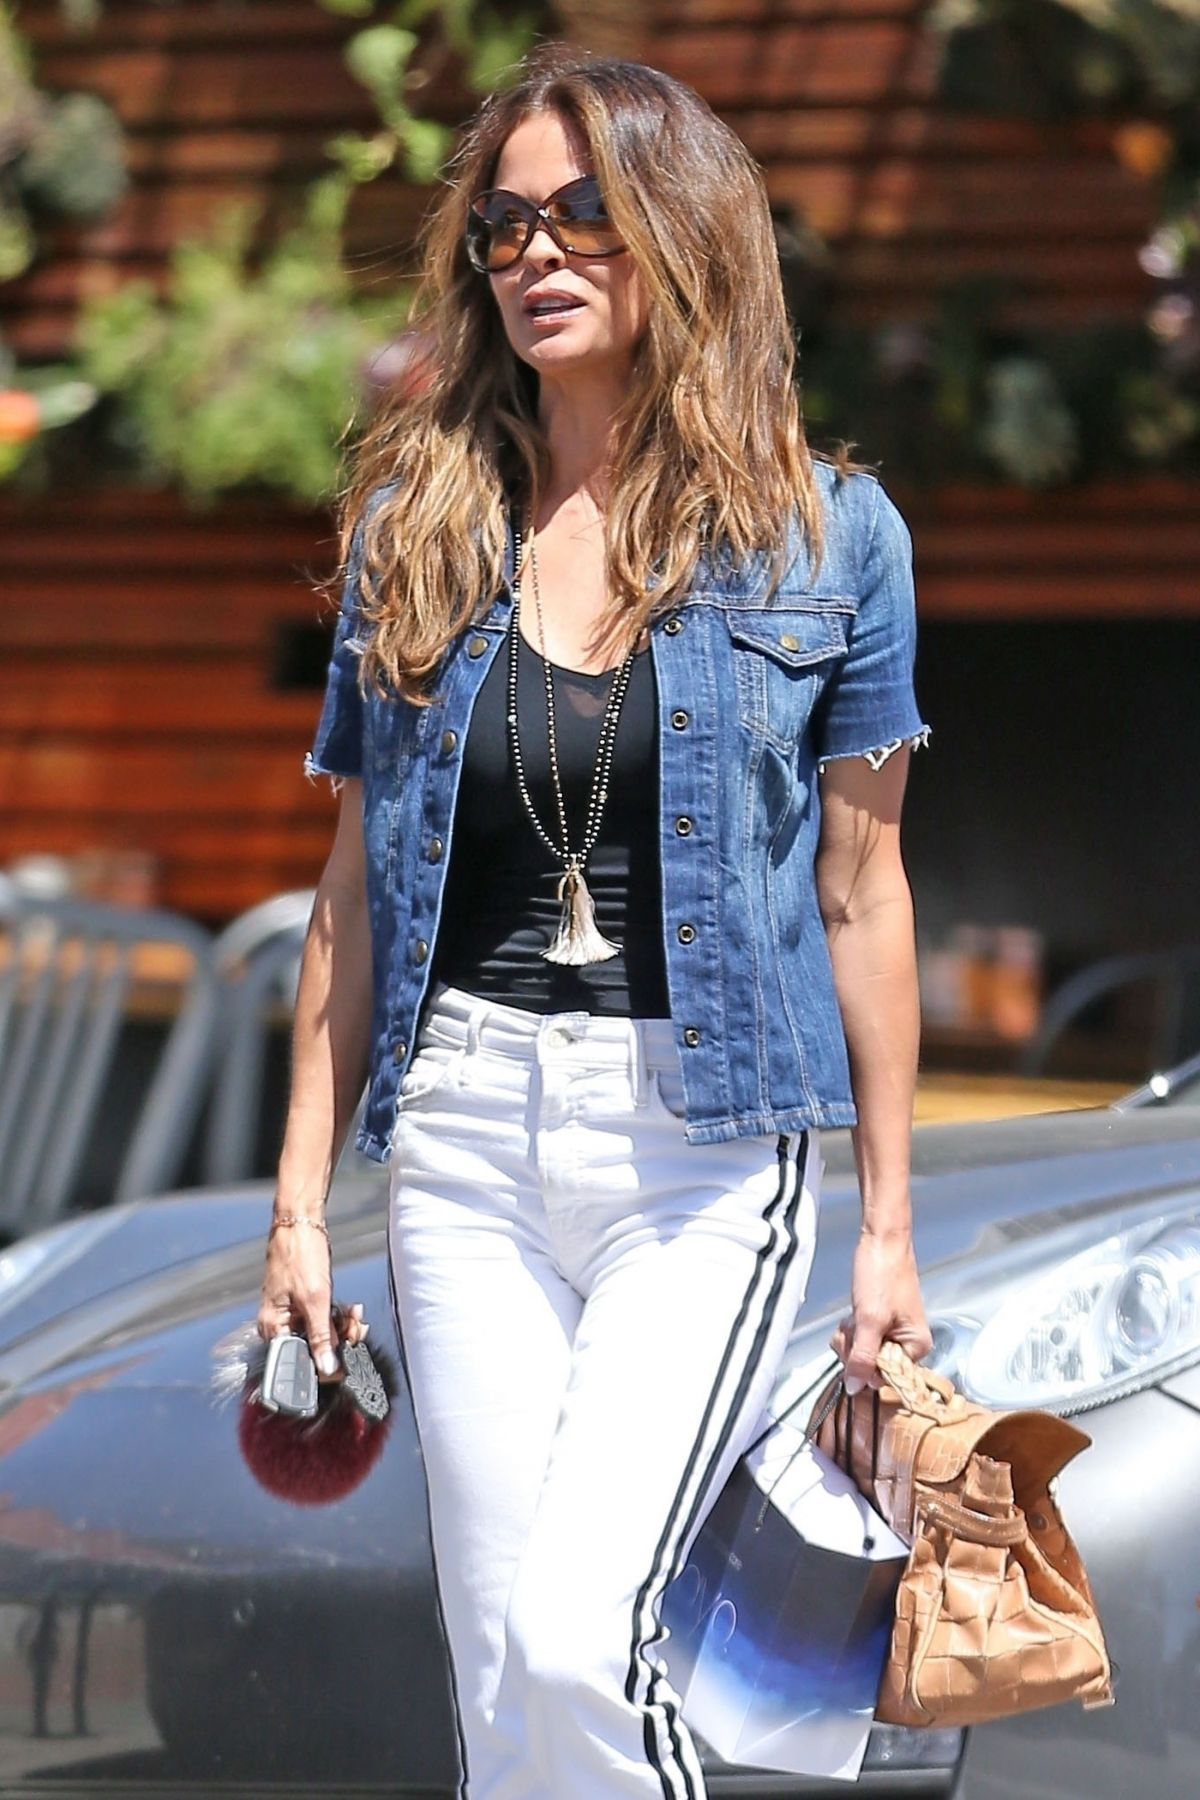 BROOKE BURKE Out And About In Santa Monica 04122018 HawtCelebs